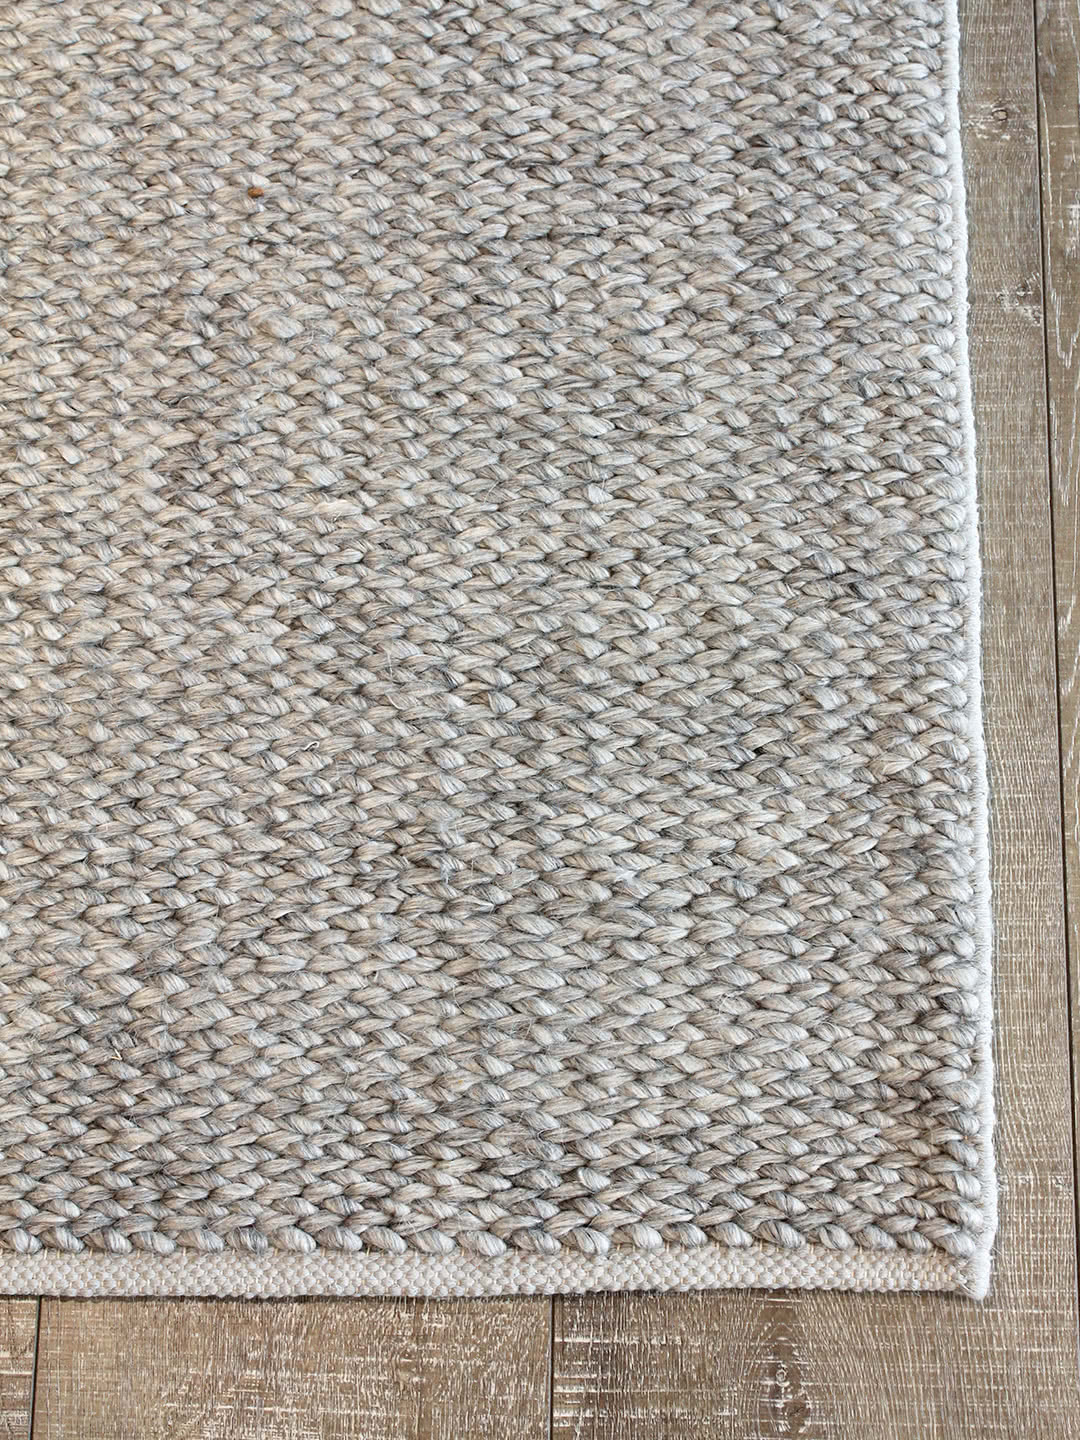 Grey wool rugs Perth